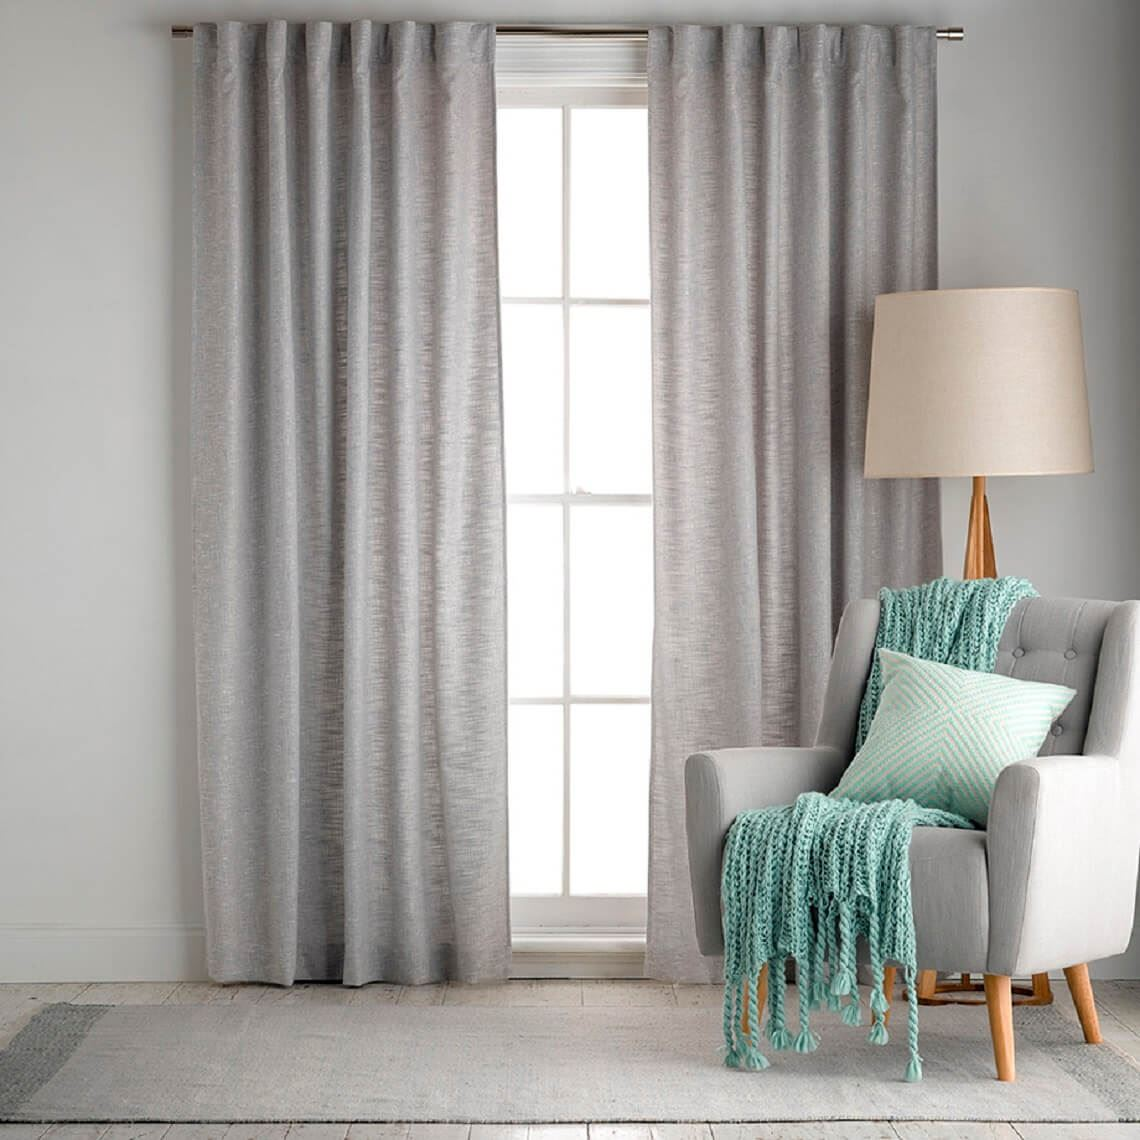 Clarence Curtain Size W 180cm x D 1cm x H 250cm in Silver 100% Polyester Freedom by Freedom, a Curtains for sale on Style Sourcebook